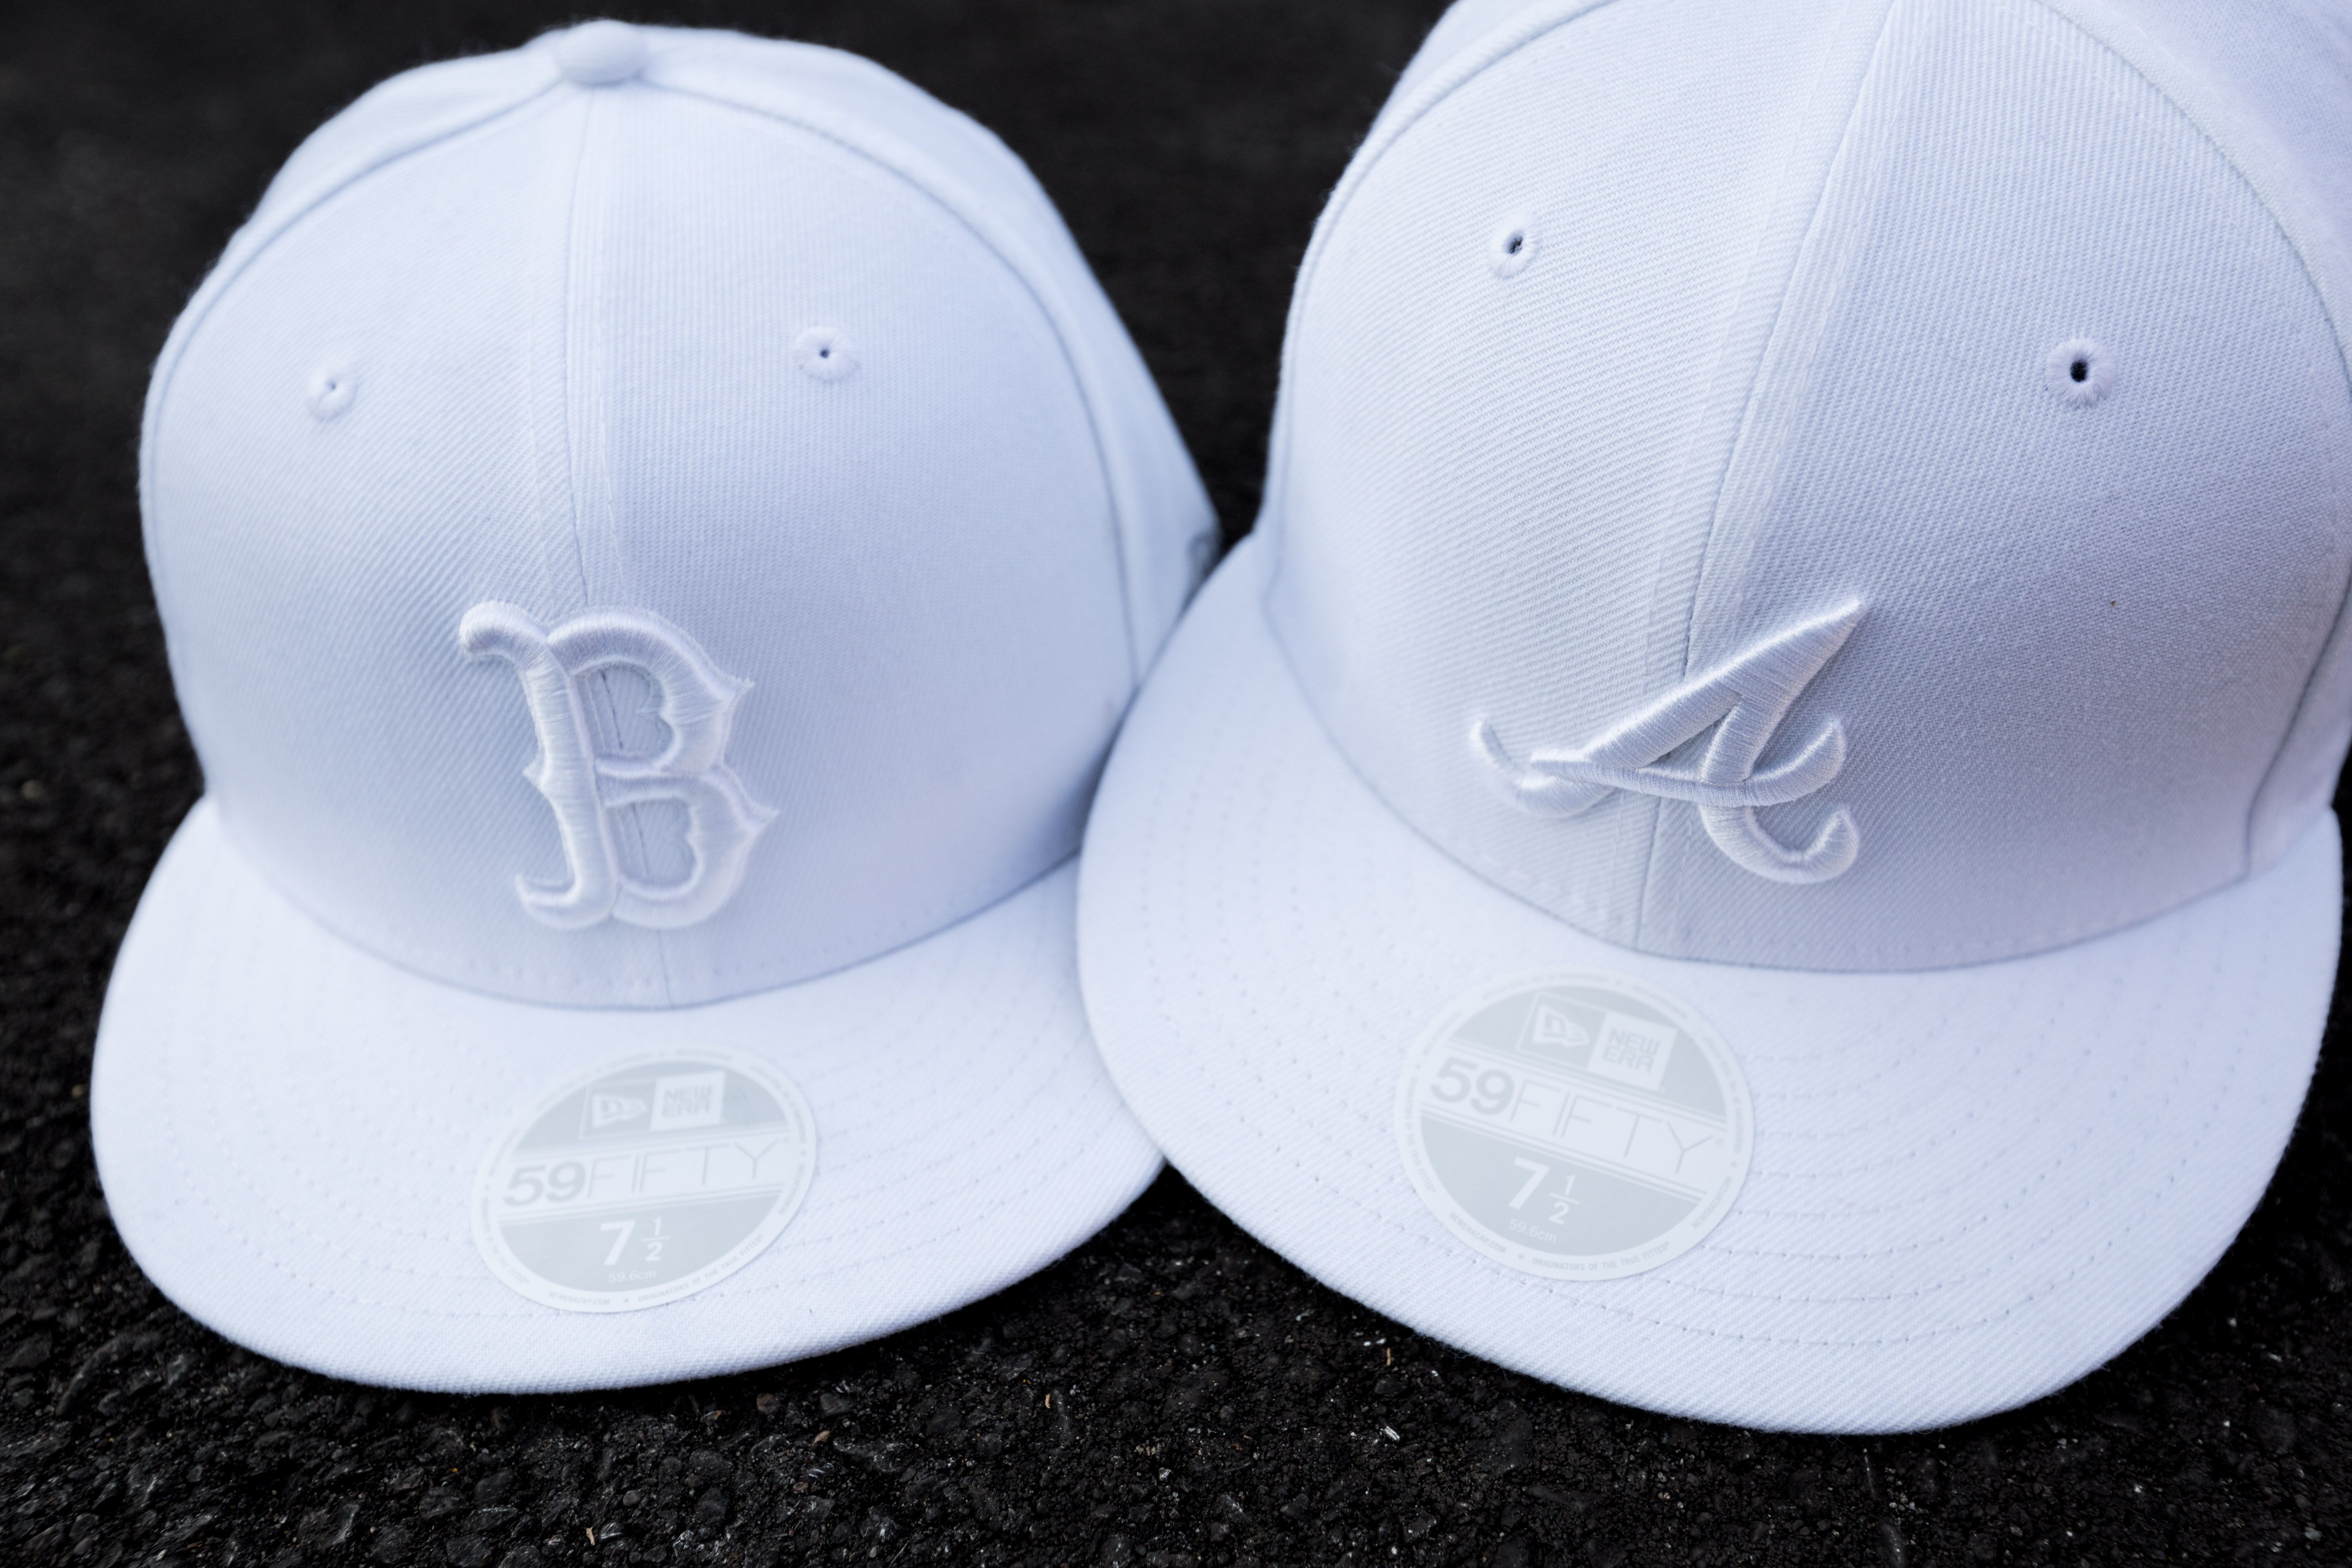 Introducing The Newest Summer Style New Era Mlb All White Collection Exclusively Available At Lids Cap Collection New Era Cap New Era